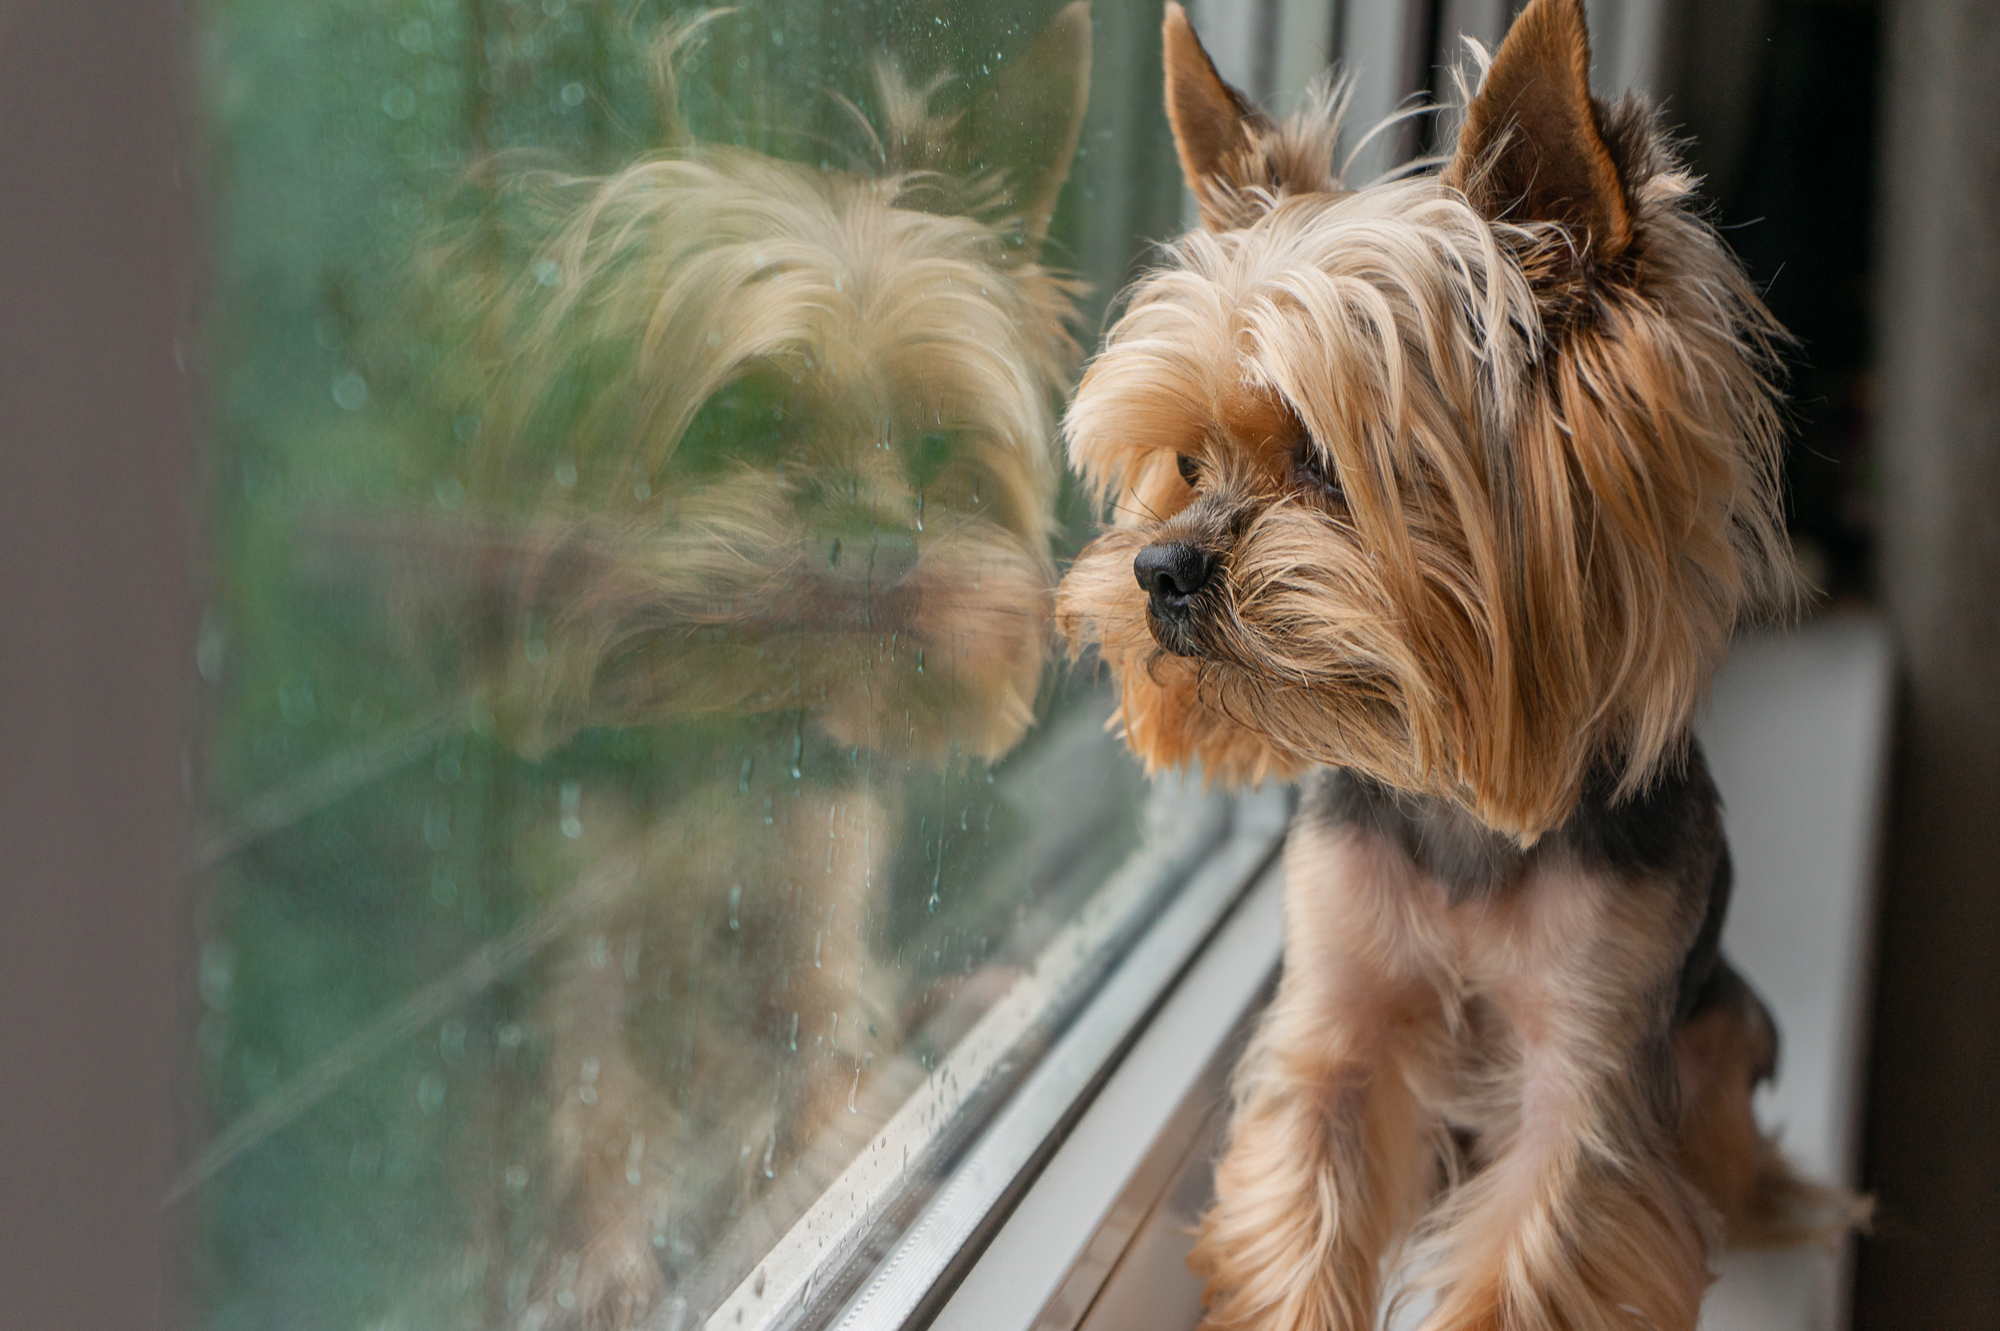 A dog looks out the window